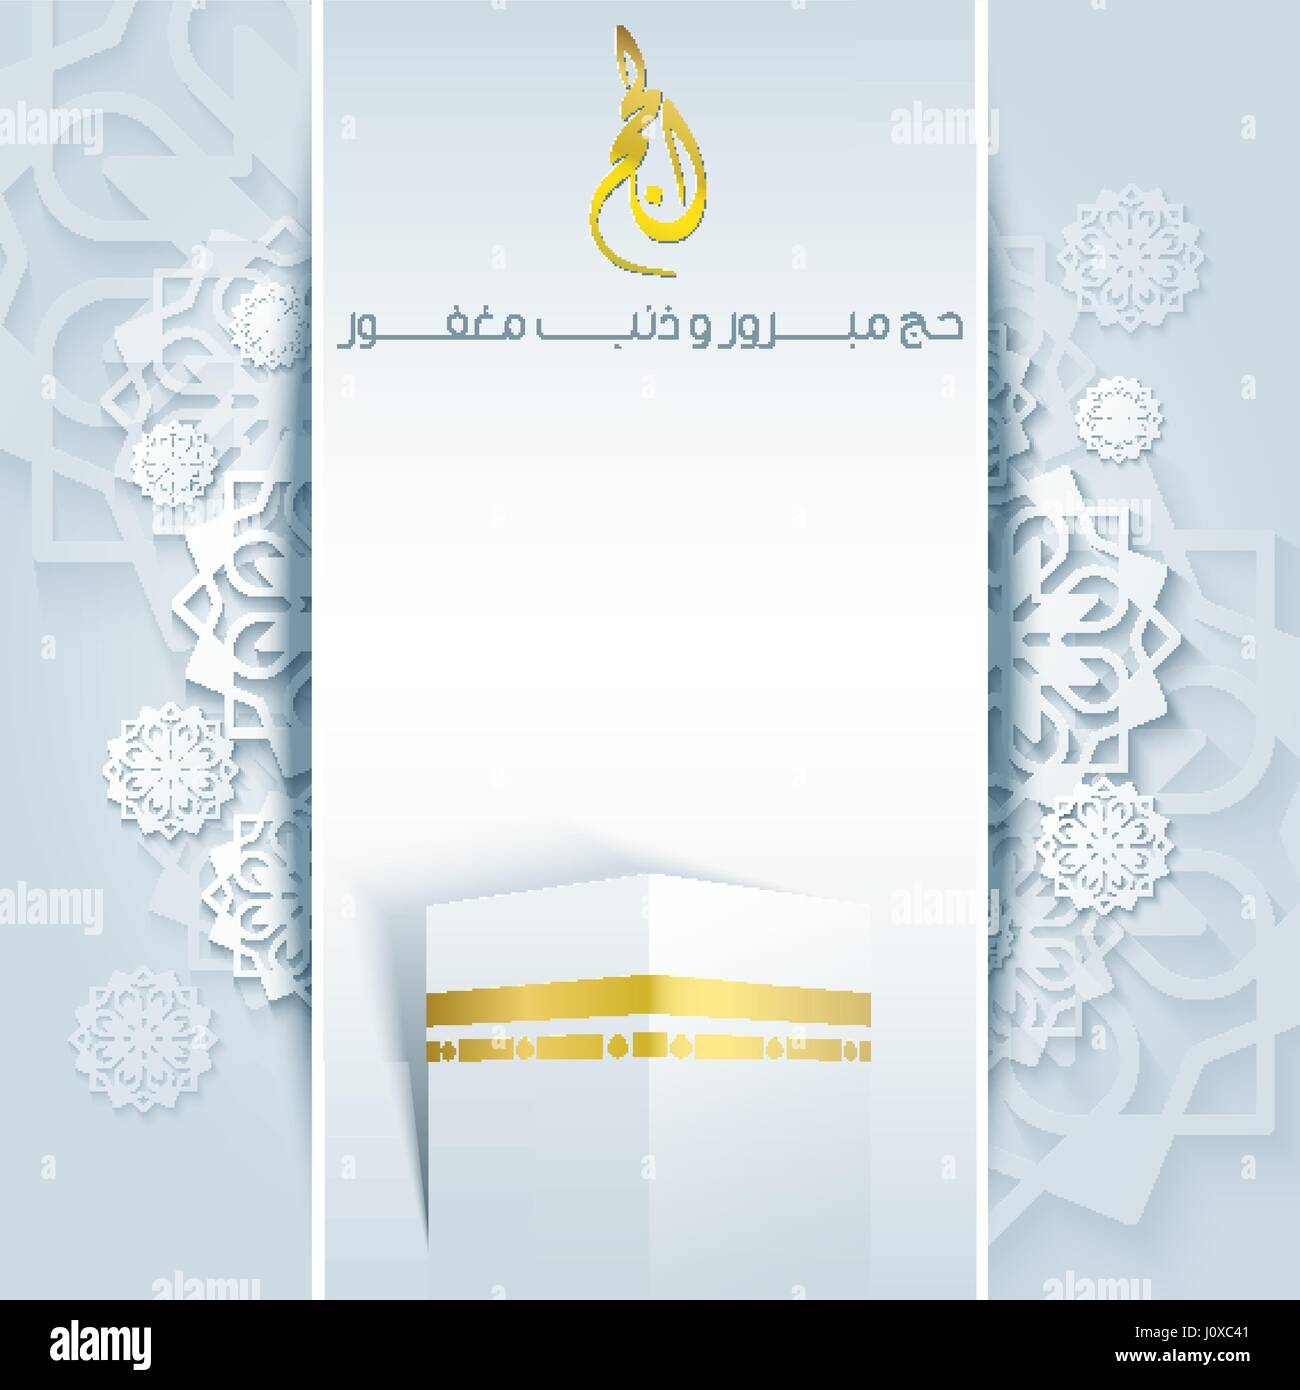 Umrah Banner: Hajj Greeting Greeting Card Background With Kaaba And